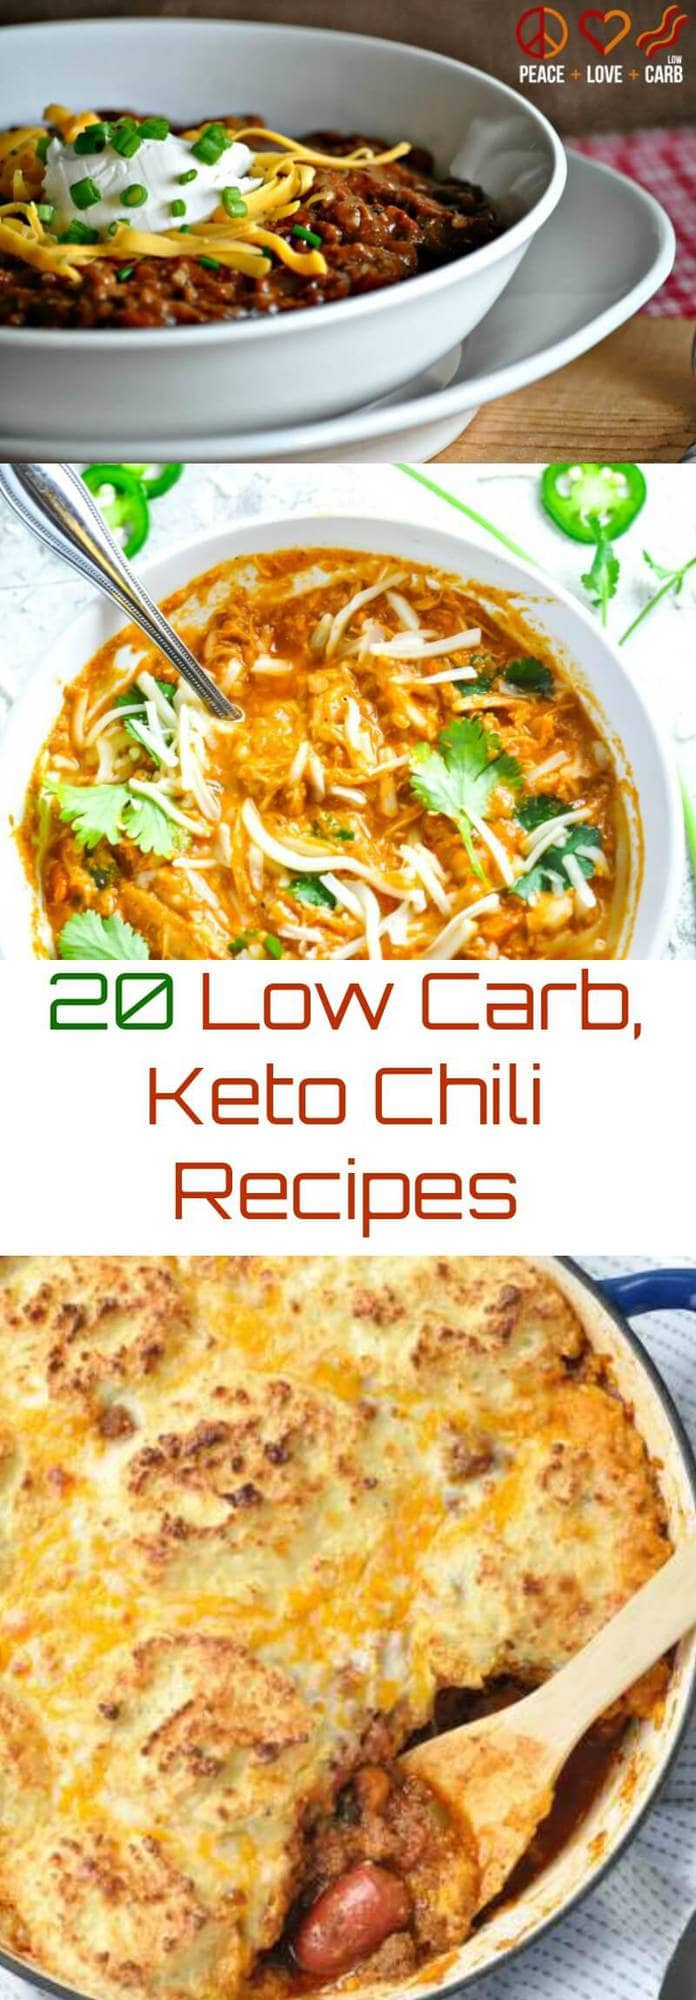 20 Low Carb Keto Chili Recipes | Peace Love and Low Carb